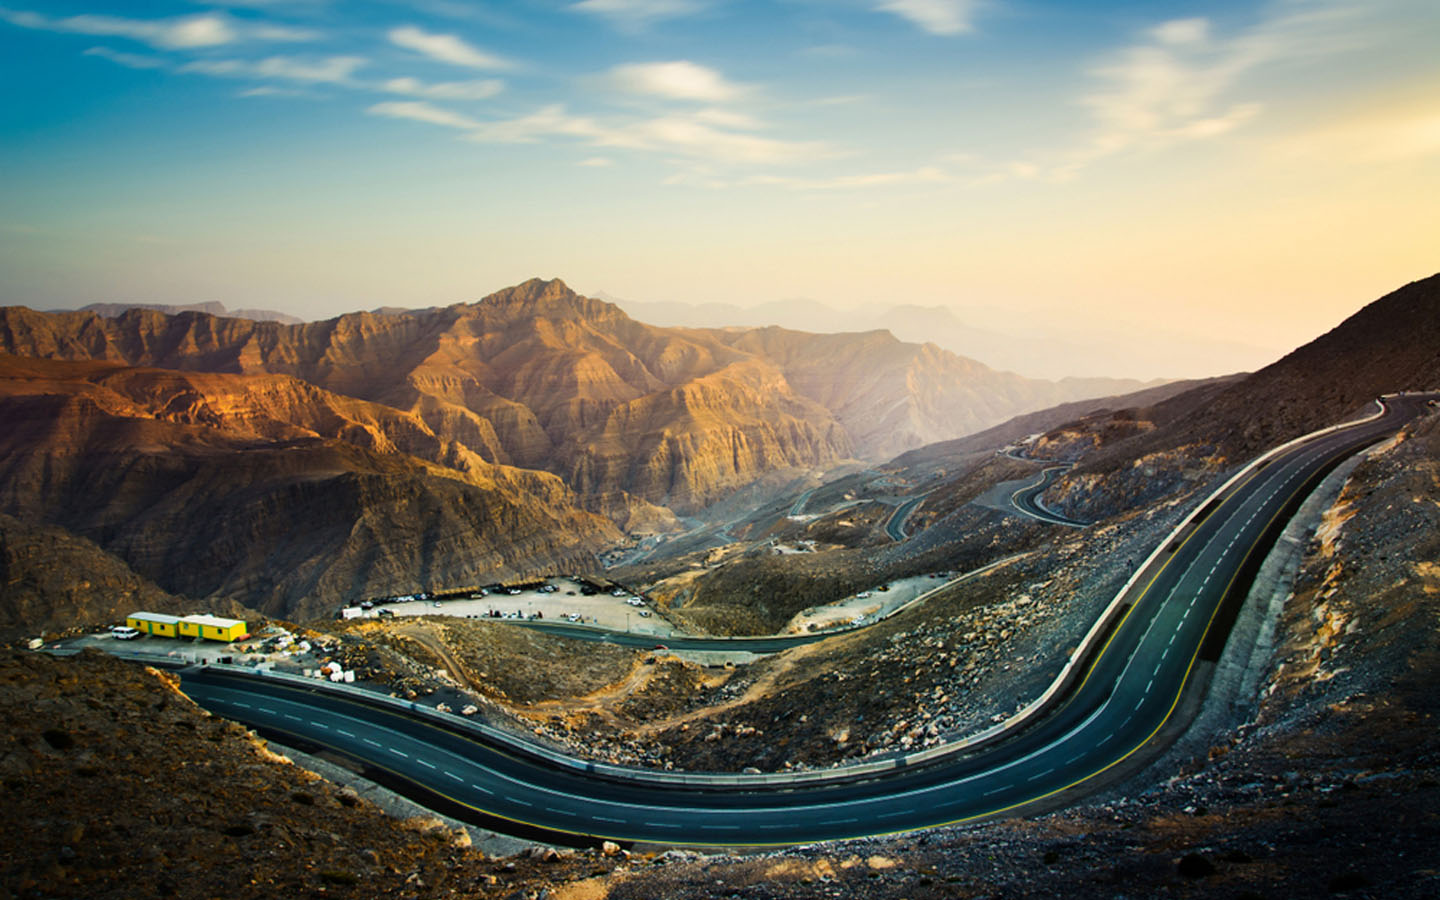 Ras Al Khaimah is one of the best places for road trips in UAE